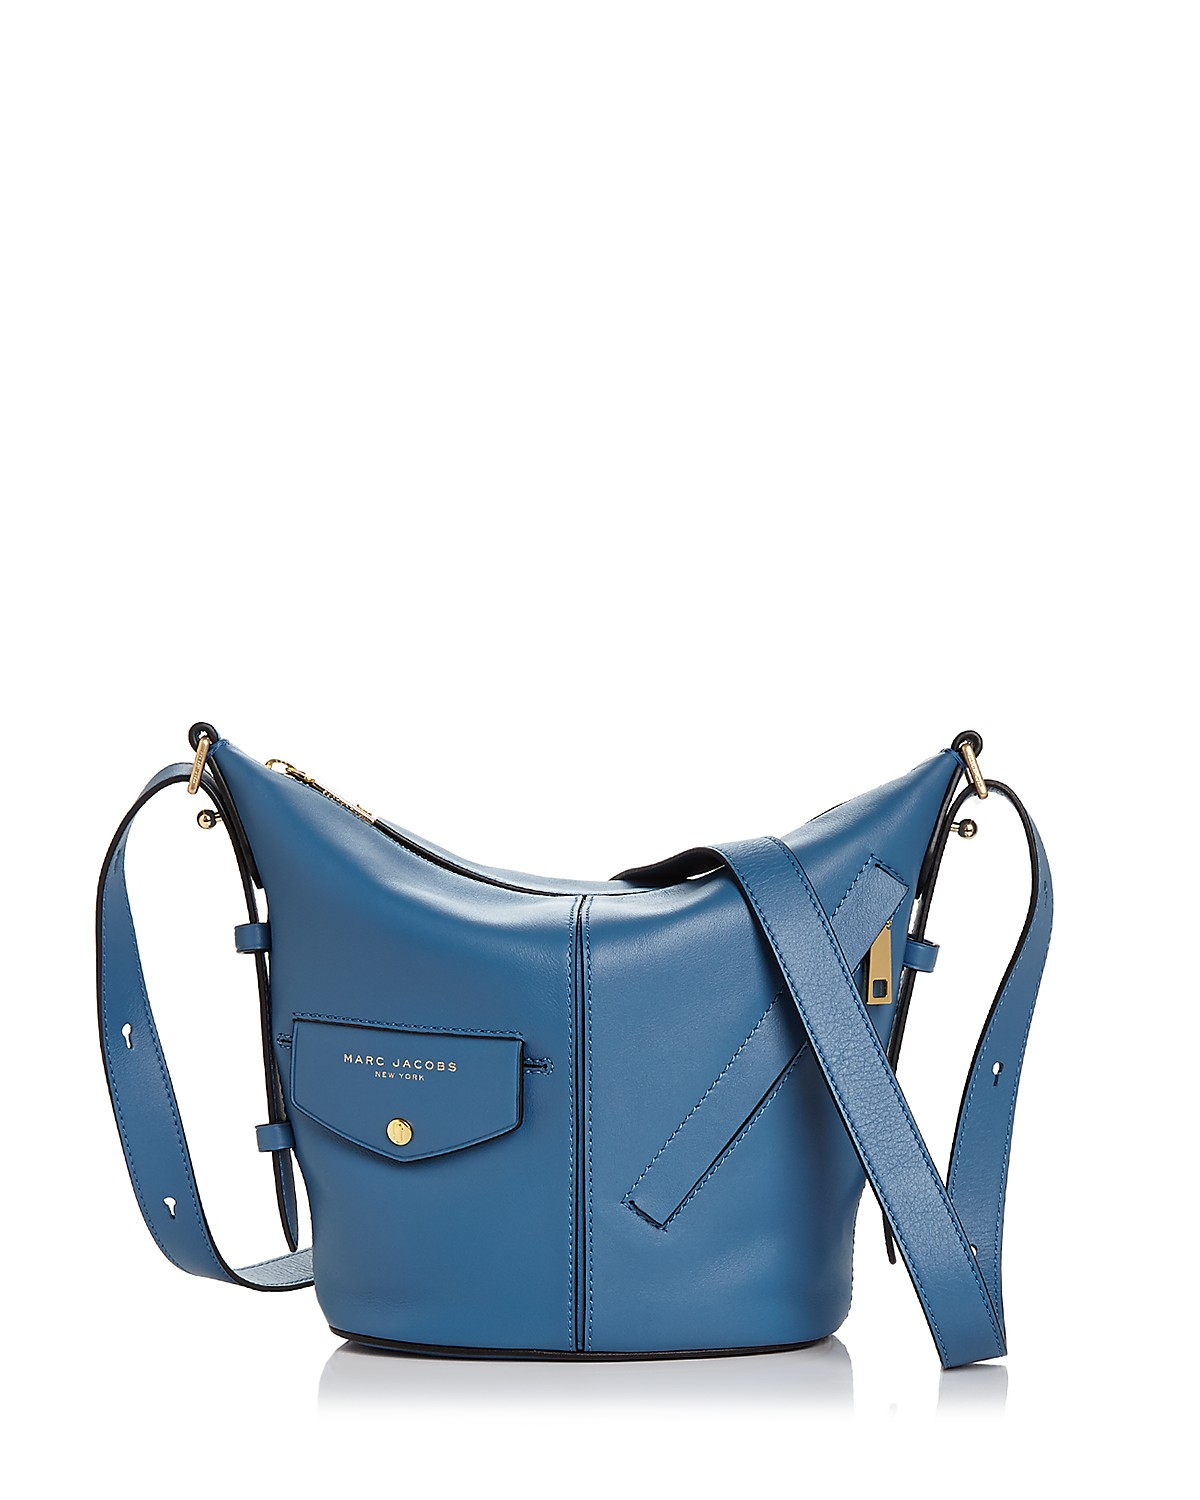 6e7a012170f3 Bloomingdales  Up to 40% Off Handbags on Sale Brands Coach 1941